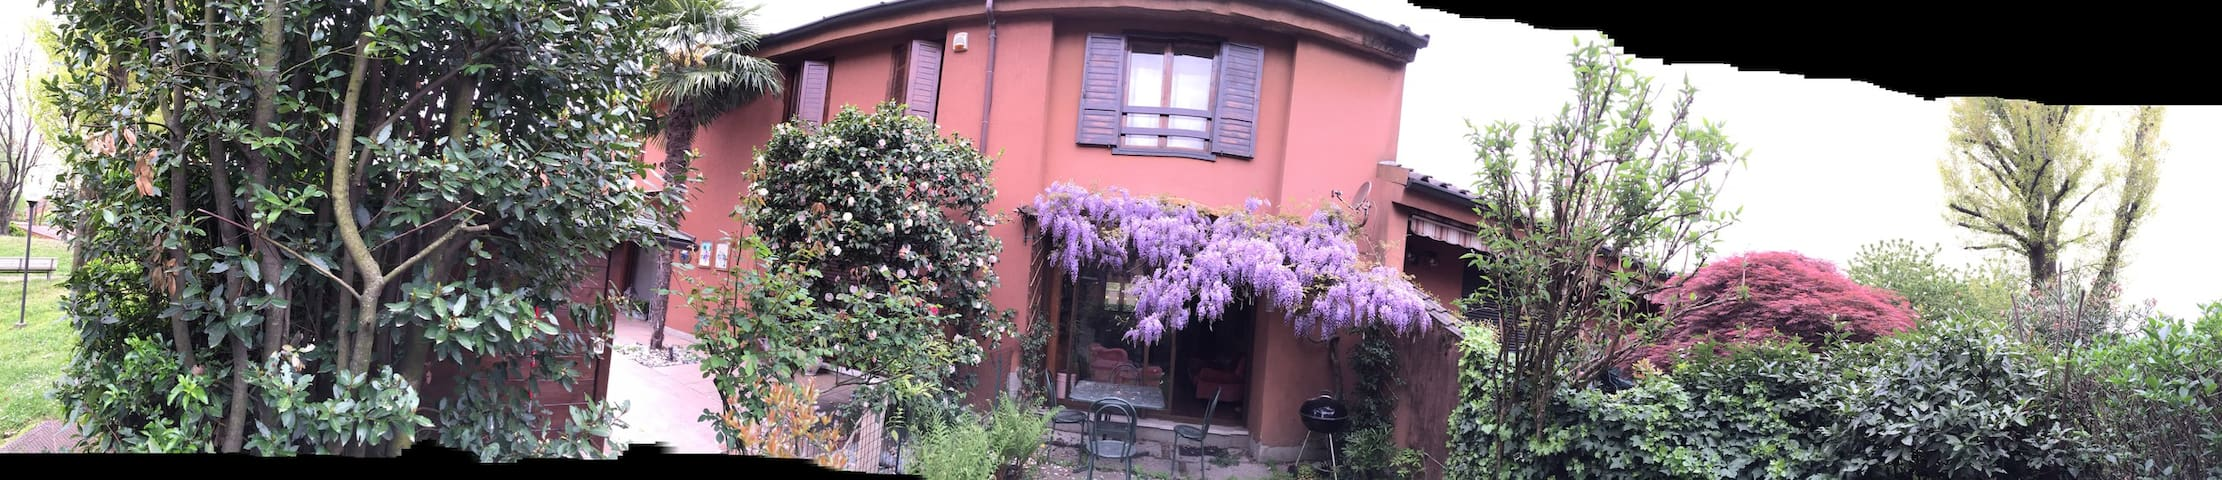 Glycine Villa 30 min from Milan - Arlate - Rumah